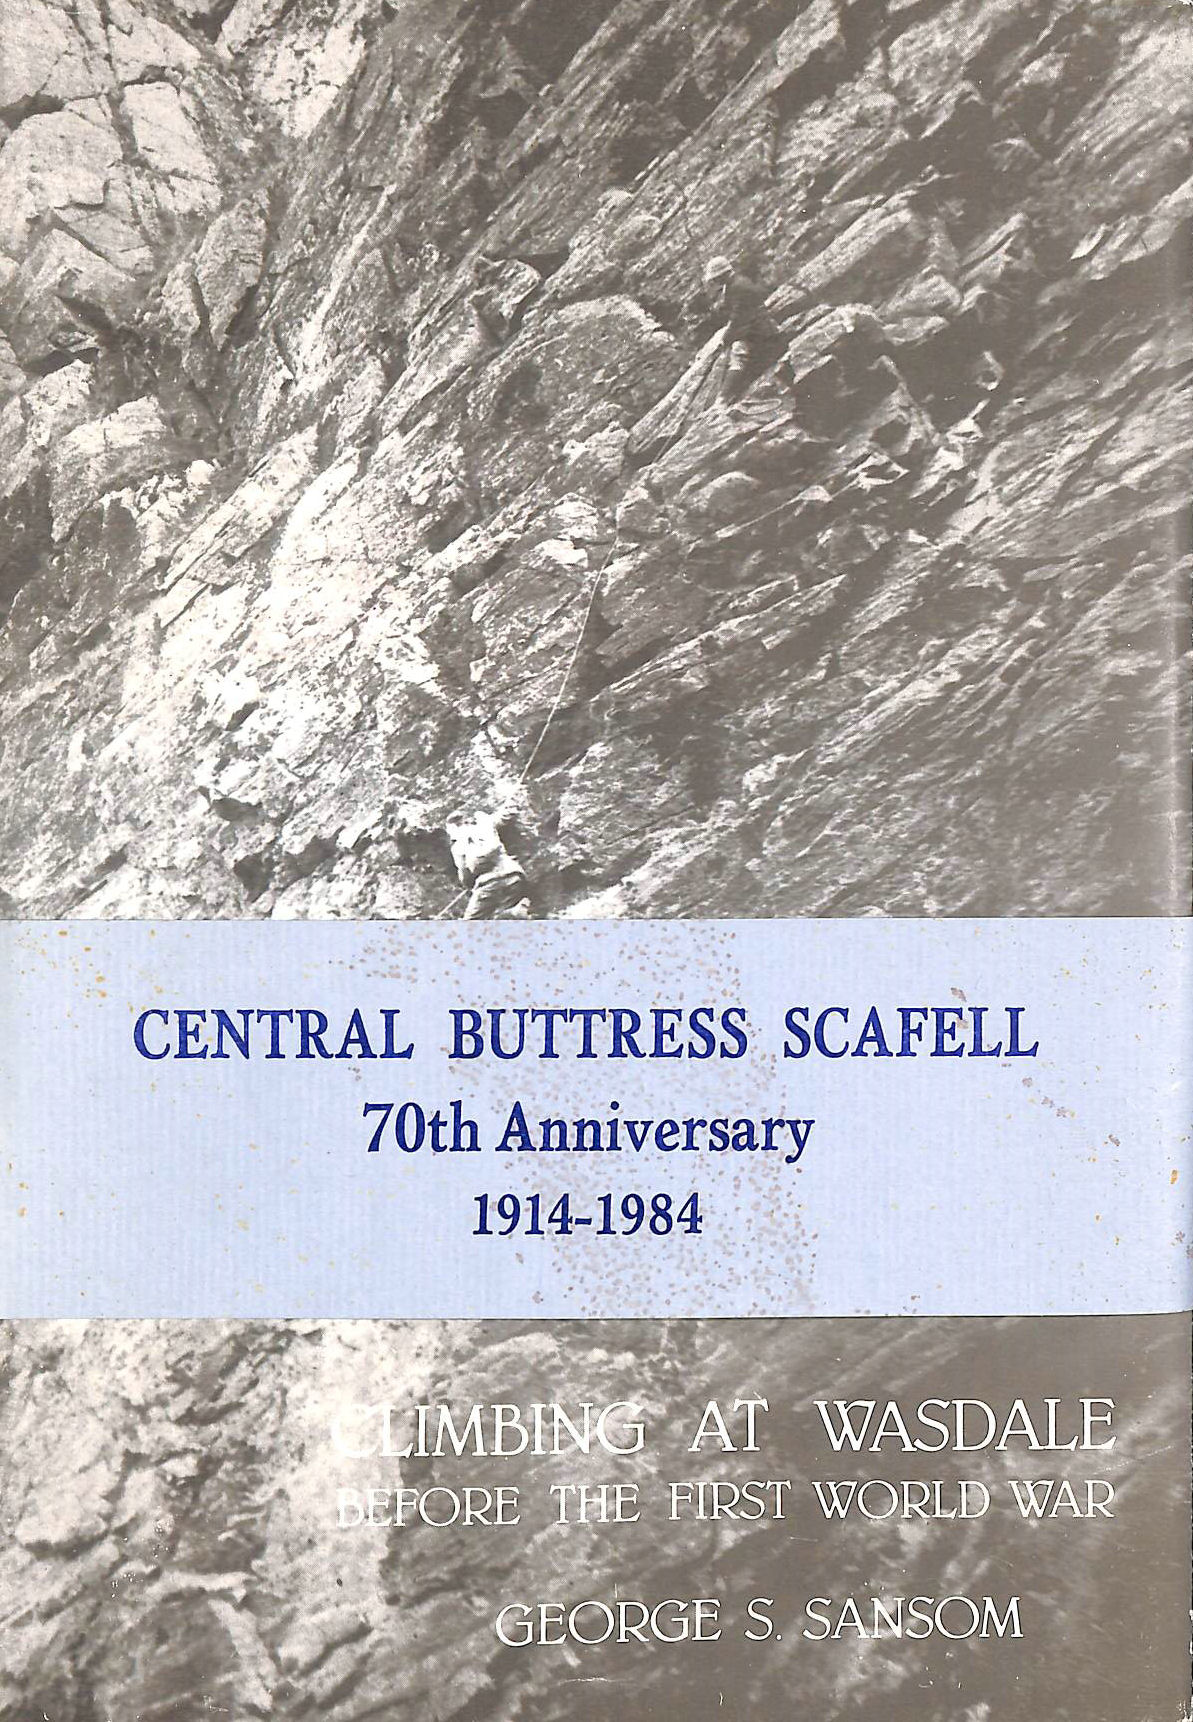 Image for Climbing at Wasdale Before the First World War: The Mountain Journal of an Edwardian Gentleman